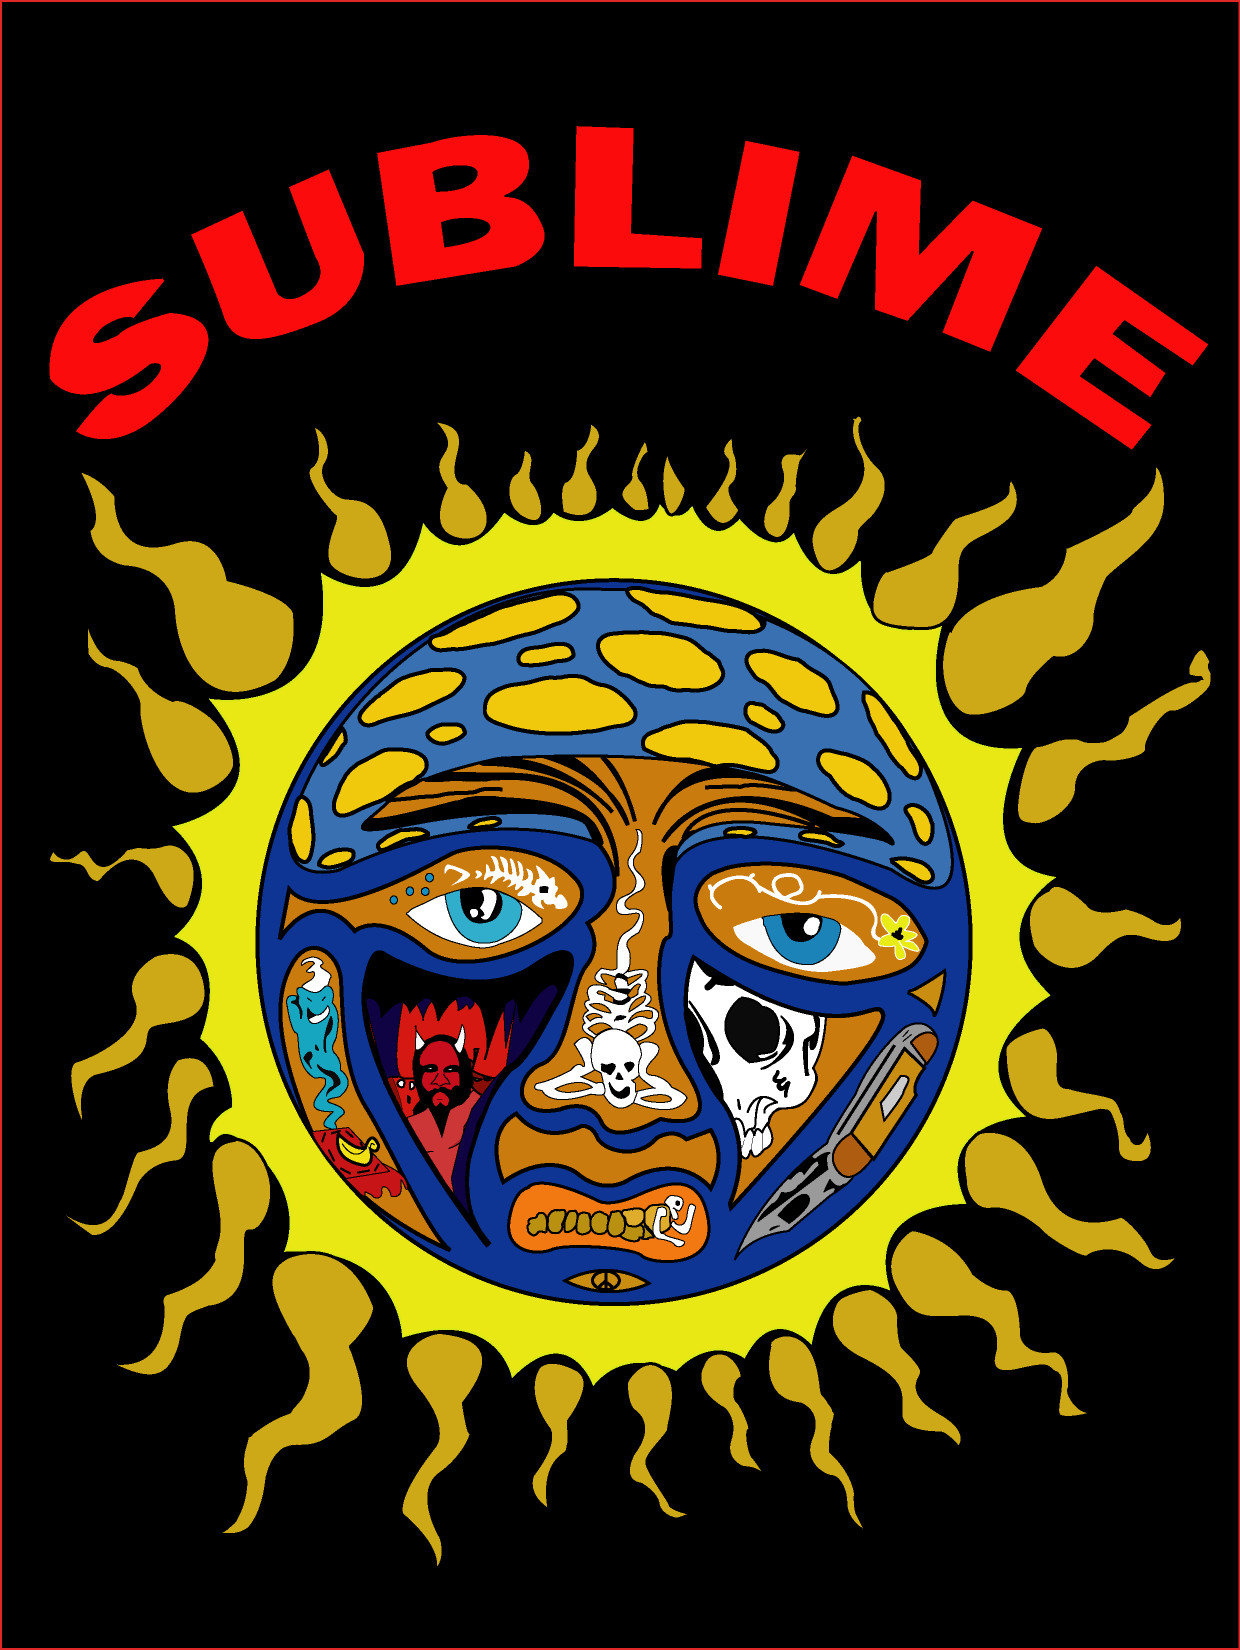 sublime sun traced by kevob1577 on deviantart